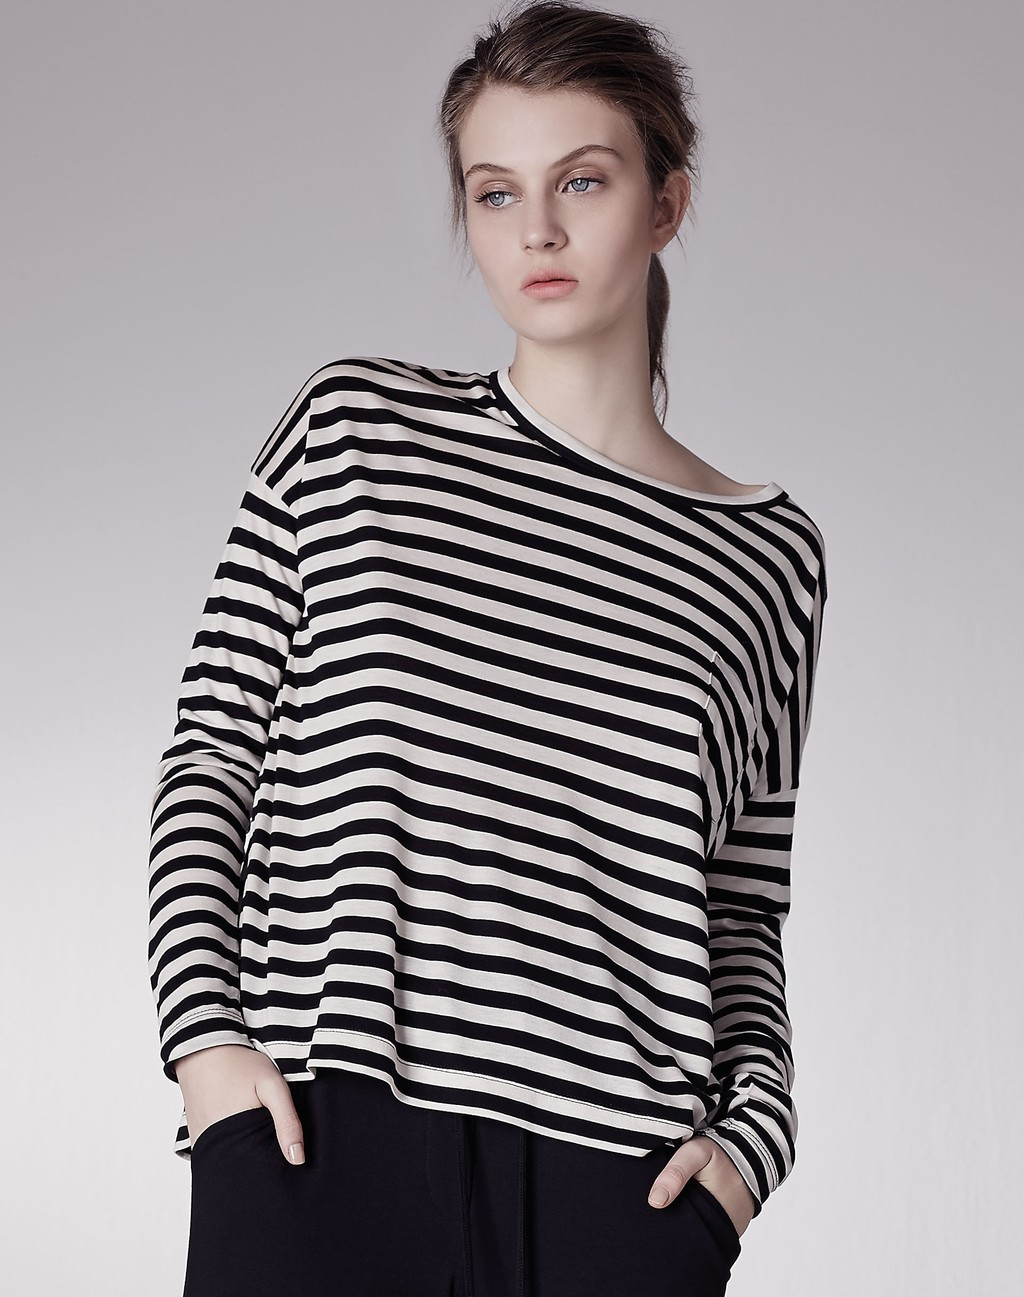 Stripe Box Tee Black/Cream - pattern: horizontal stripes; predominant colour: white; secondary colour: black; occasions: casual; length: standard; style: top; fibres: viscose/rayon - 100%; fit: loose; neckline: crew; sleeve length: long sleeve; sleeve style: standard; pattern type: fabric; pattern size: standard; texture group: jersey - stretchy/drapey; multicoloured: multicoloured; season: a/w 2015; wardrobe: basic